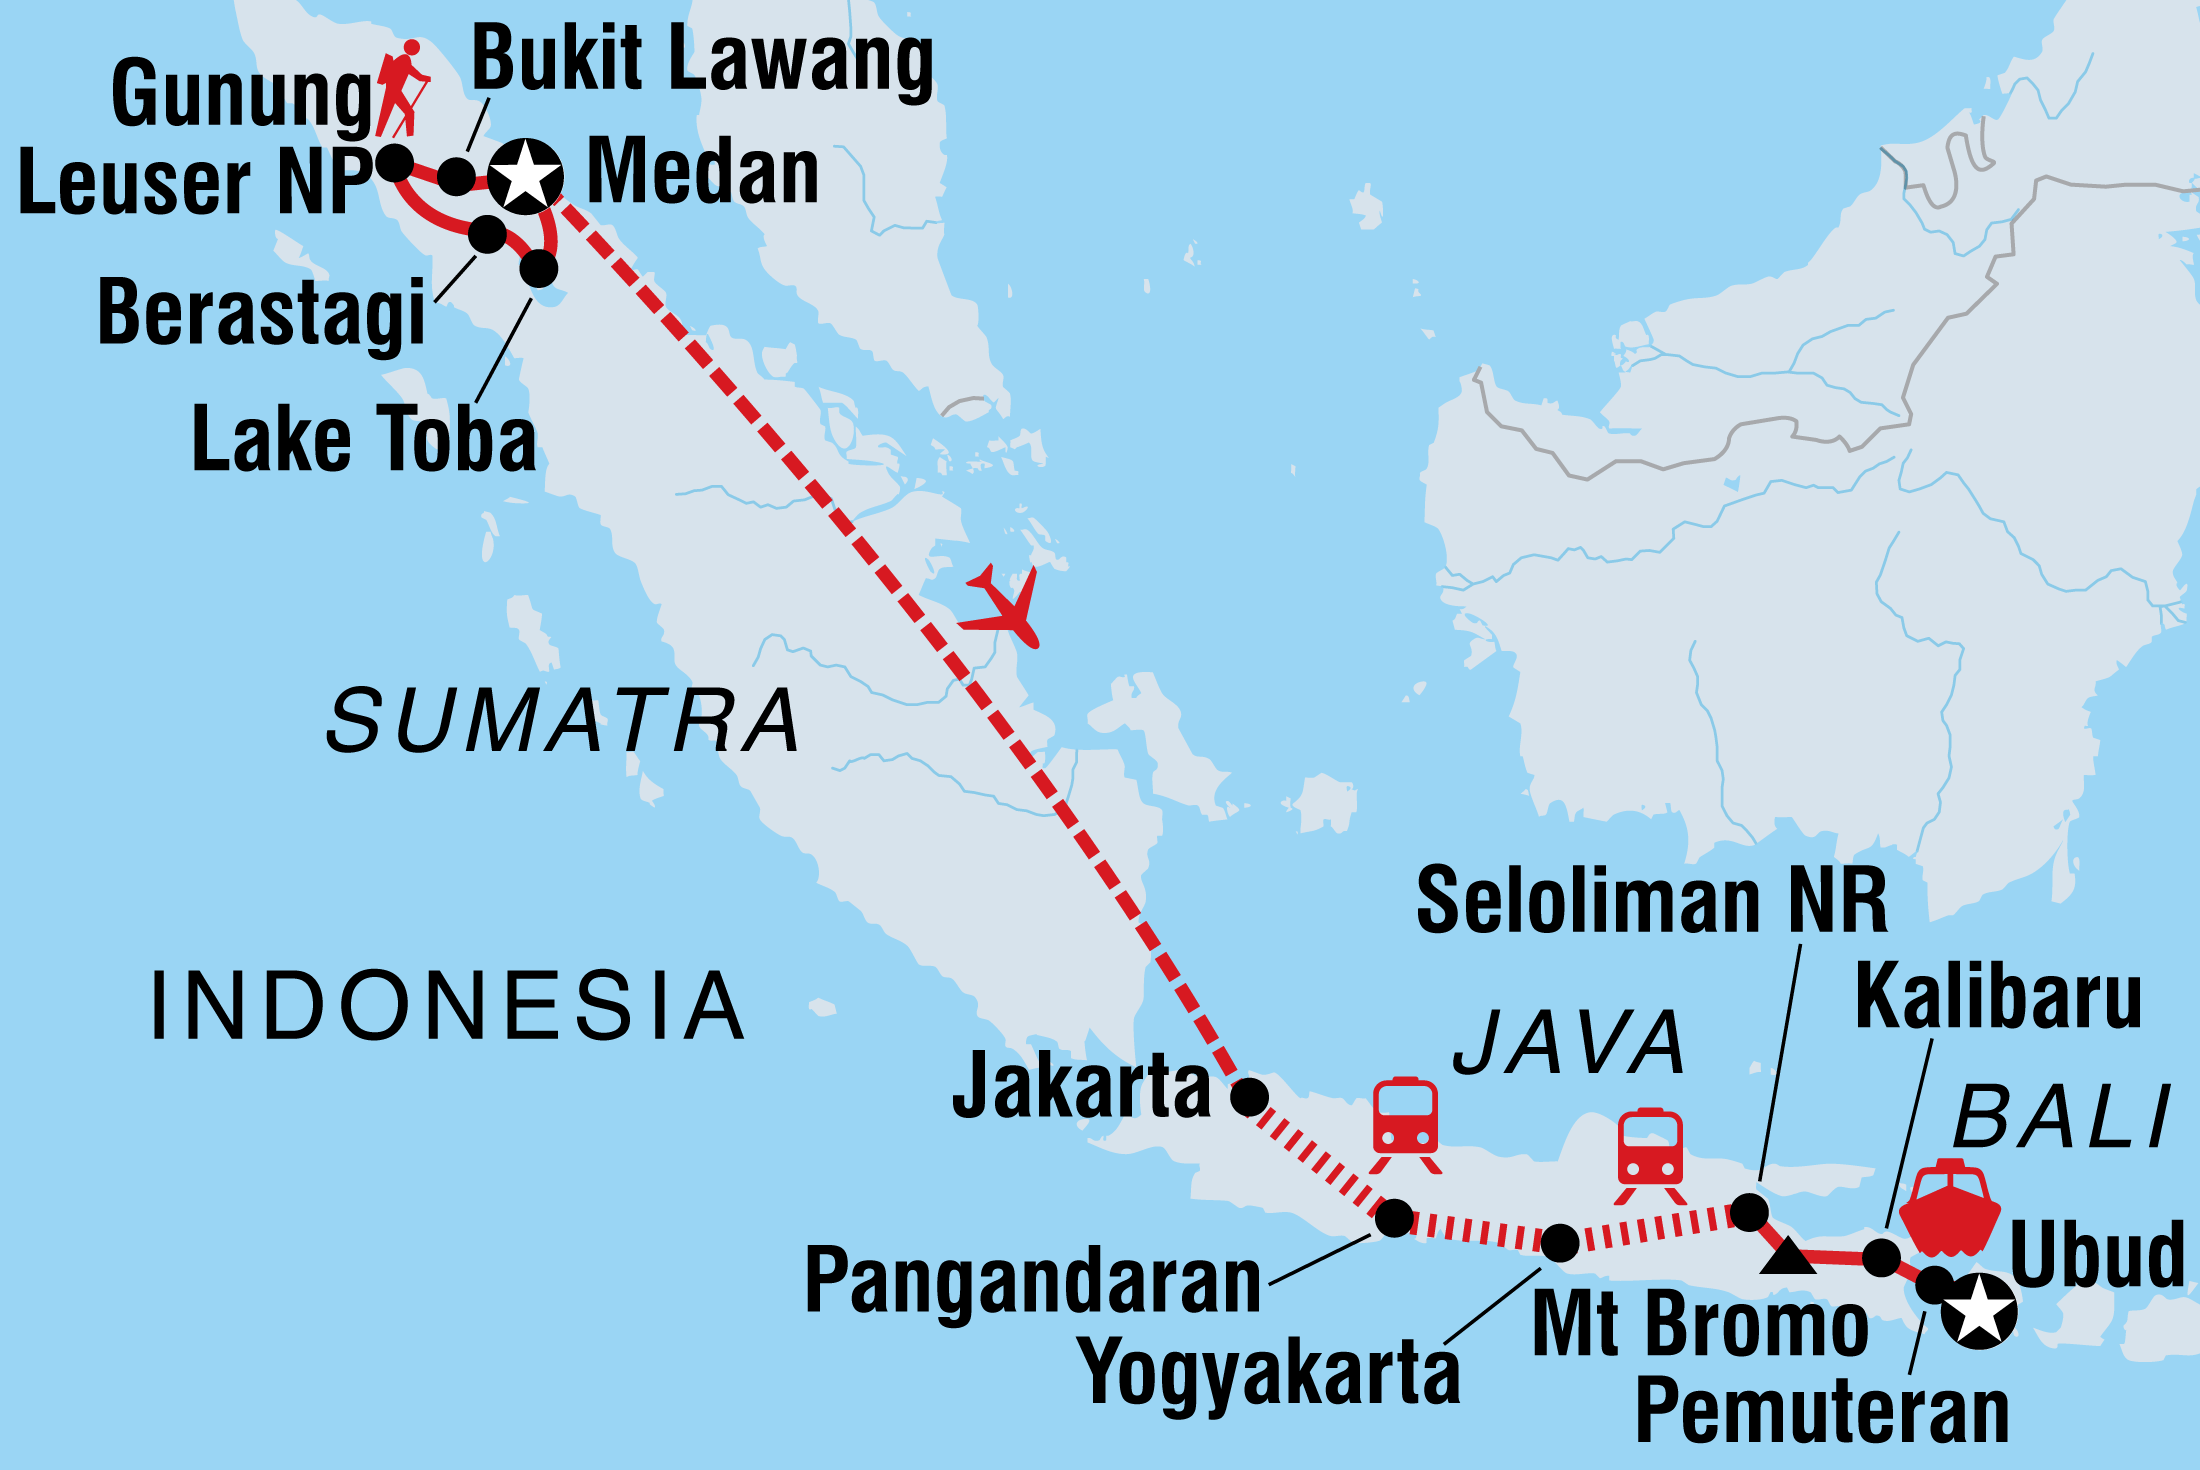 Sumatra Adventure | Intrepid Travel AU on map of east bali, map of wimauma, map of weh island, map of new guinea, map of west nusa tenggara, map of sri lanka, map of toba volcano, map of germany, map of thailand, map of borneo, map of lower india, map of indonesia, map of l.a. area, map of mount nyiragongo, map of malaya, map of tanjung pandan, map of sjaelland, map of malaysia, map of java, map of asia,